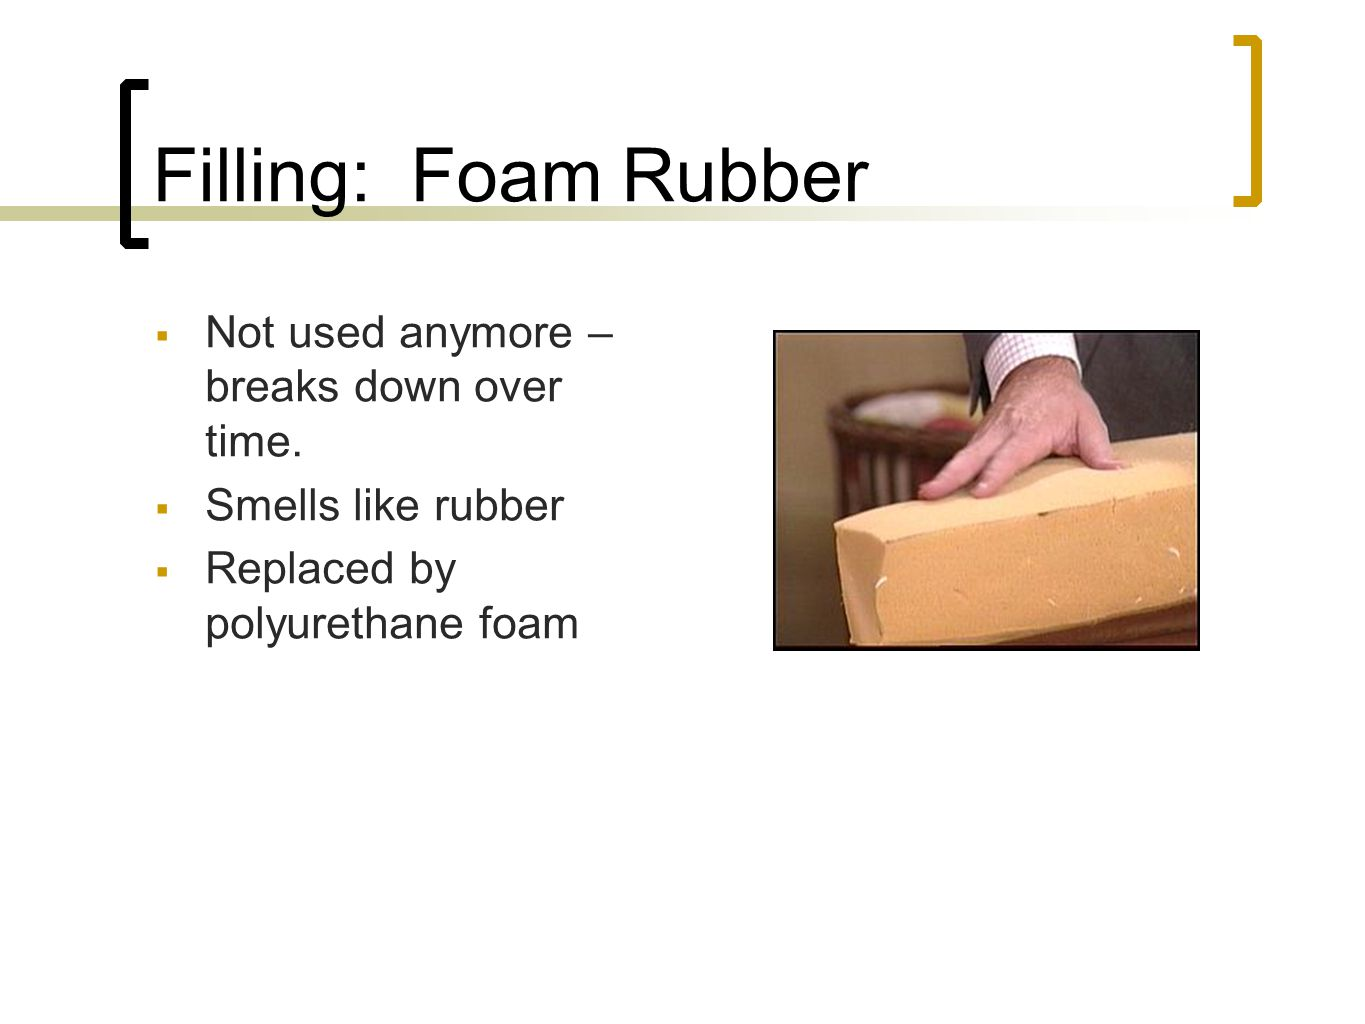 Filling: Foam Rubber Not used anymore – breaks down over time. Smells like rubber Replaced by polyurethane foam